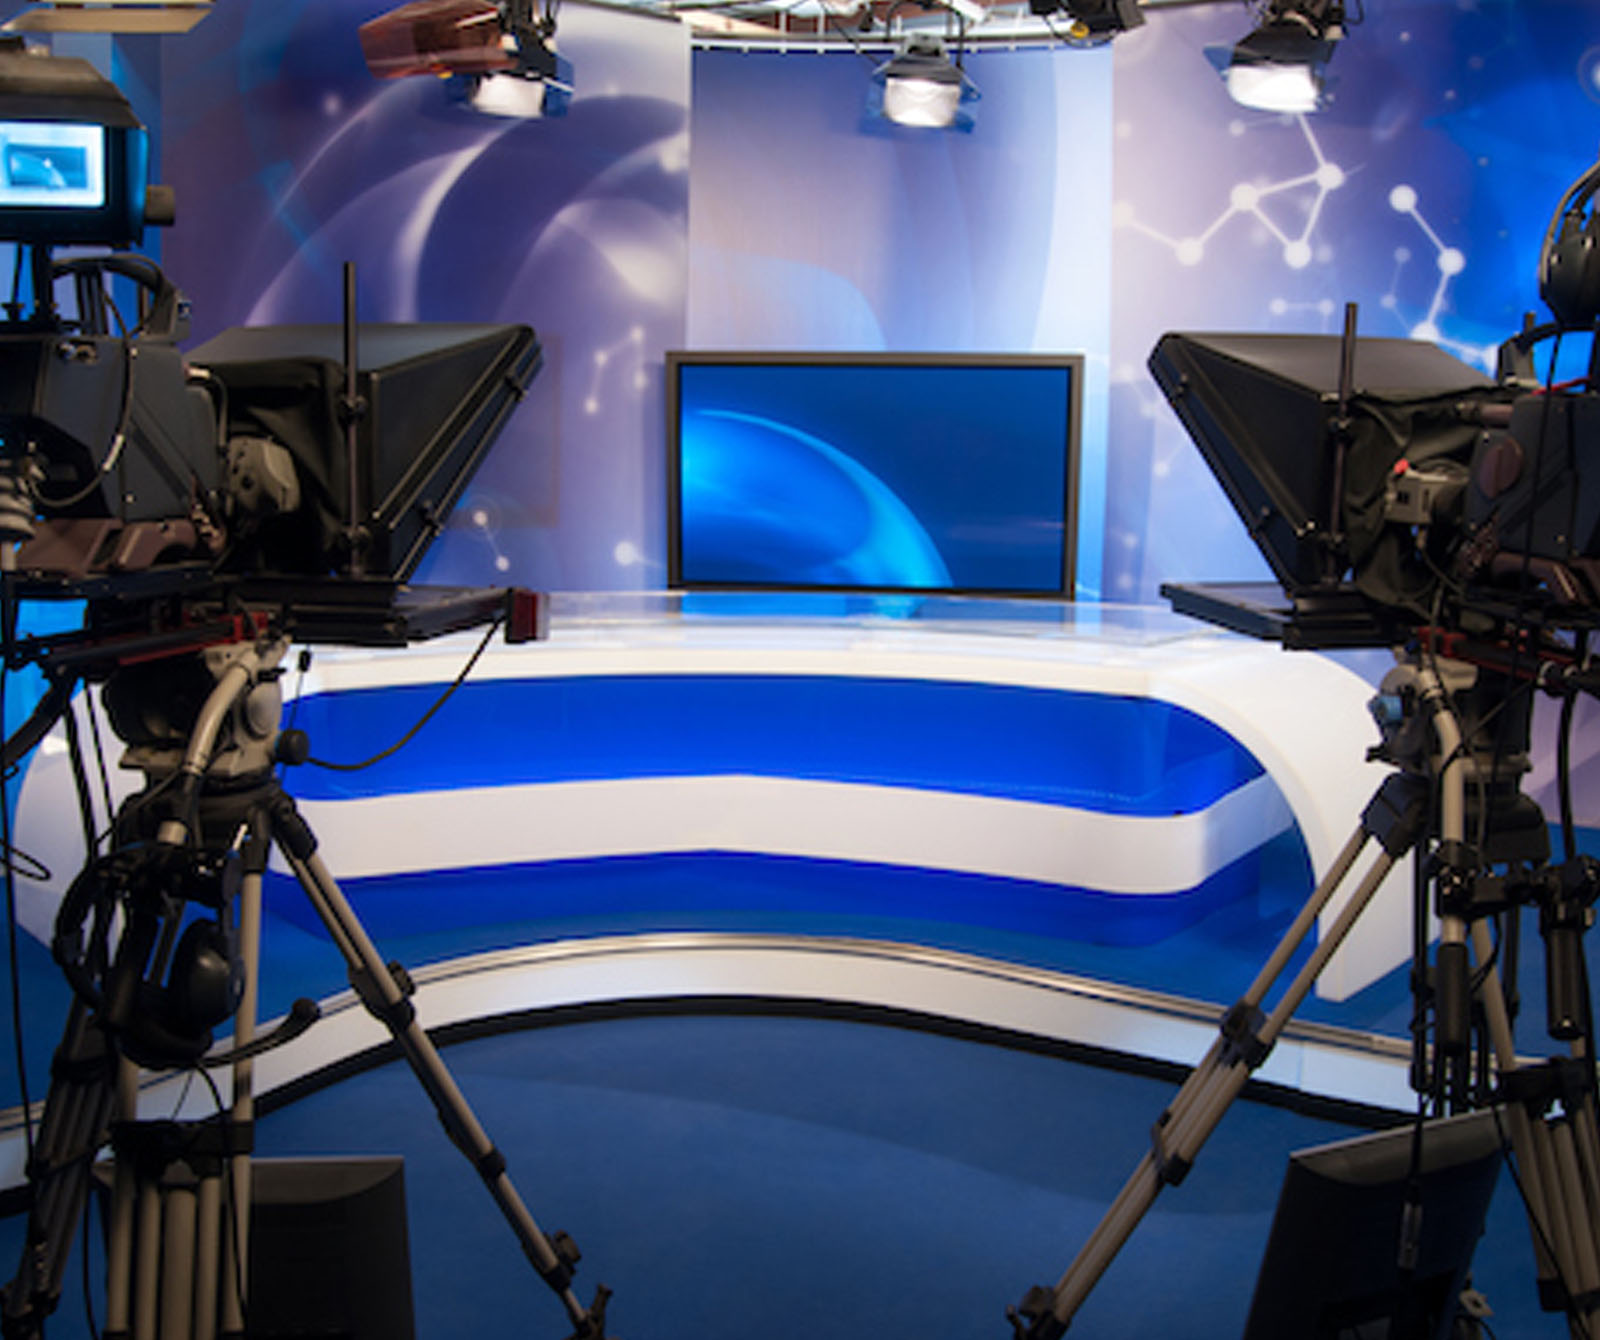 Offers 100 m2 floor-space, cameras, and boasts spectacular views over a modern London business centre providing an ideal backdrop for live News broadcasts and corporate productions.